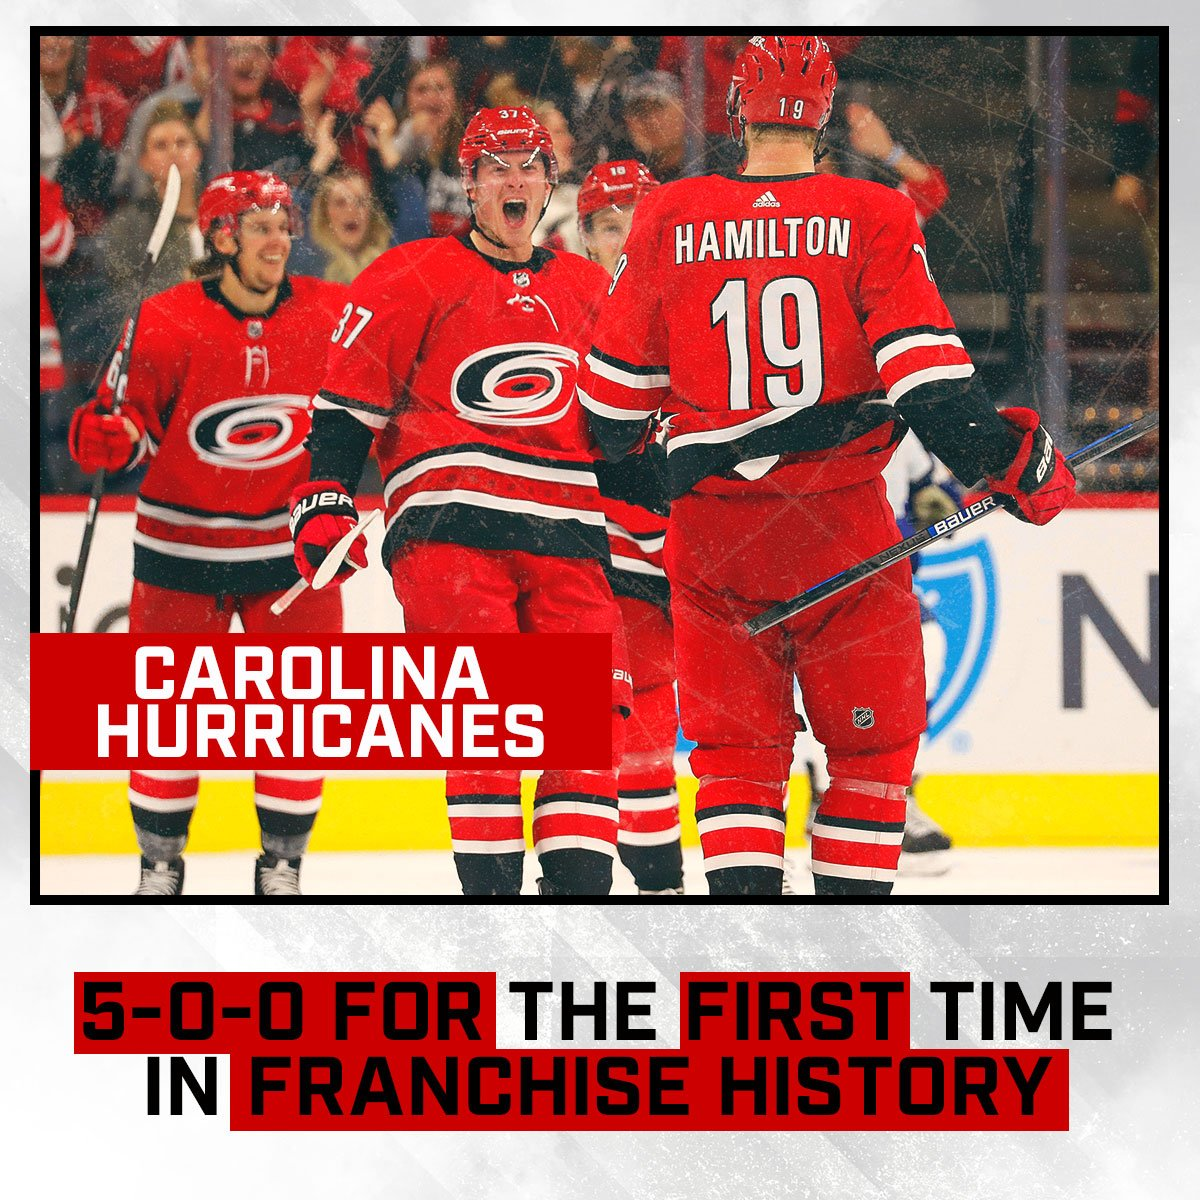 The @Canes are off to their best start in franchise history!